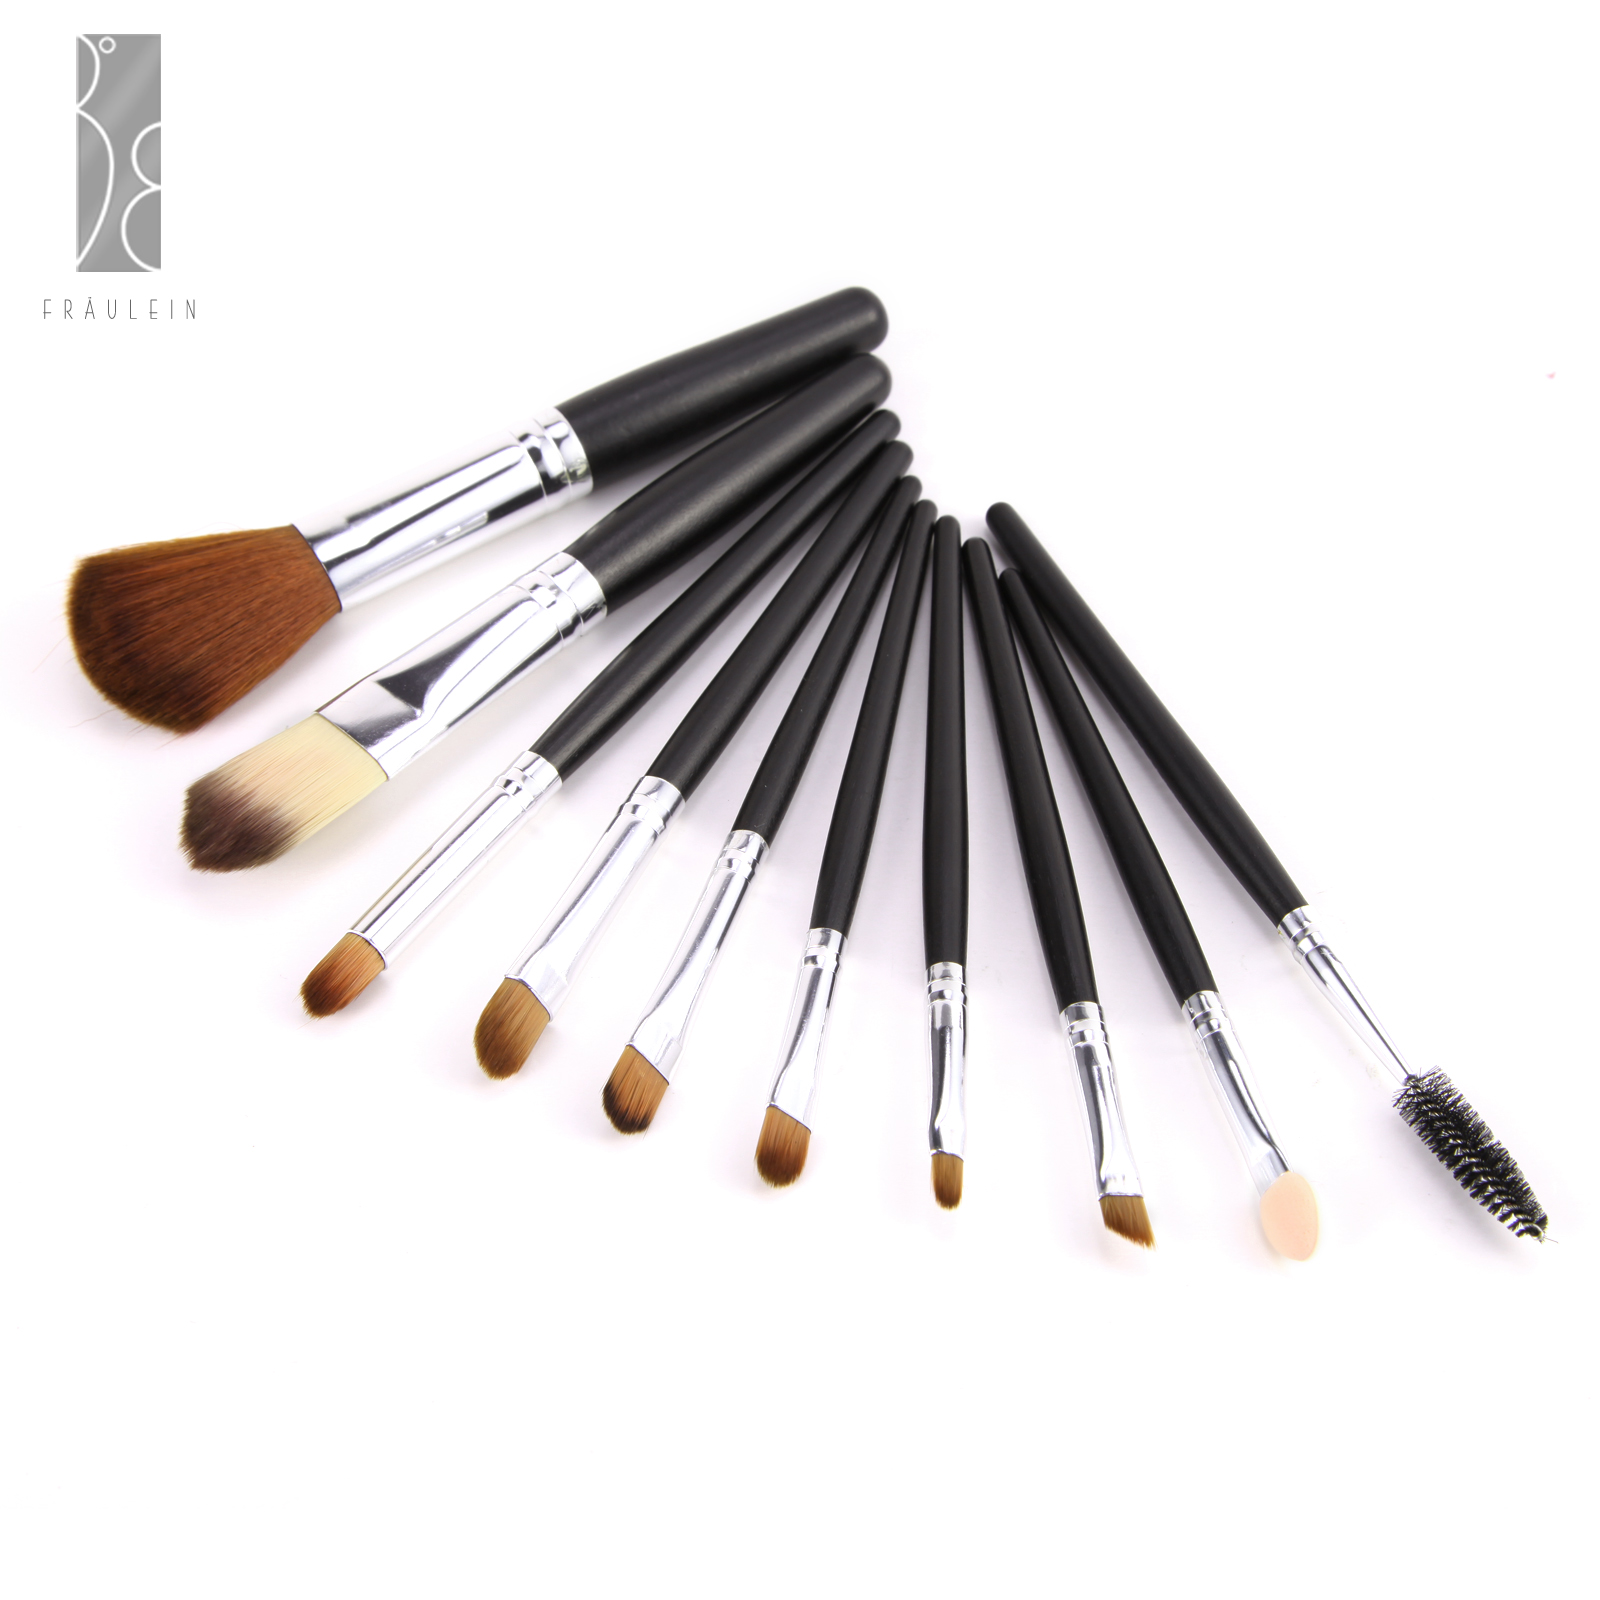 Fr ulein3 8 10 pieces mix amp match wooden brush makeup brushes set with brown case ebay - Matching wood pieces of different colors ...